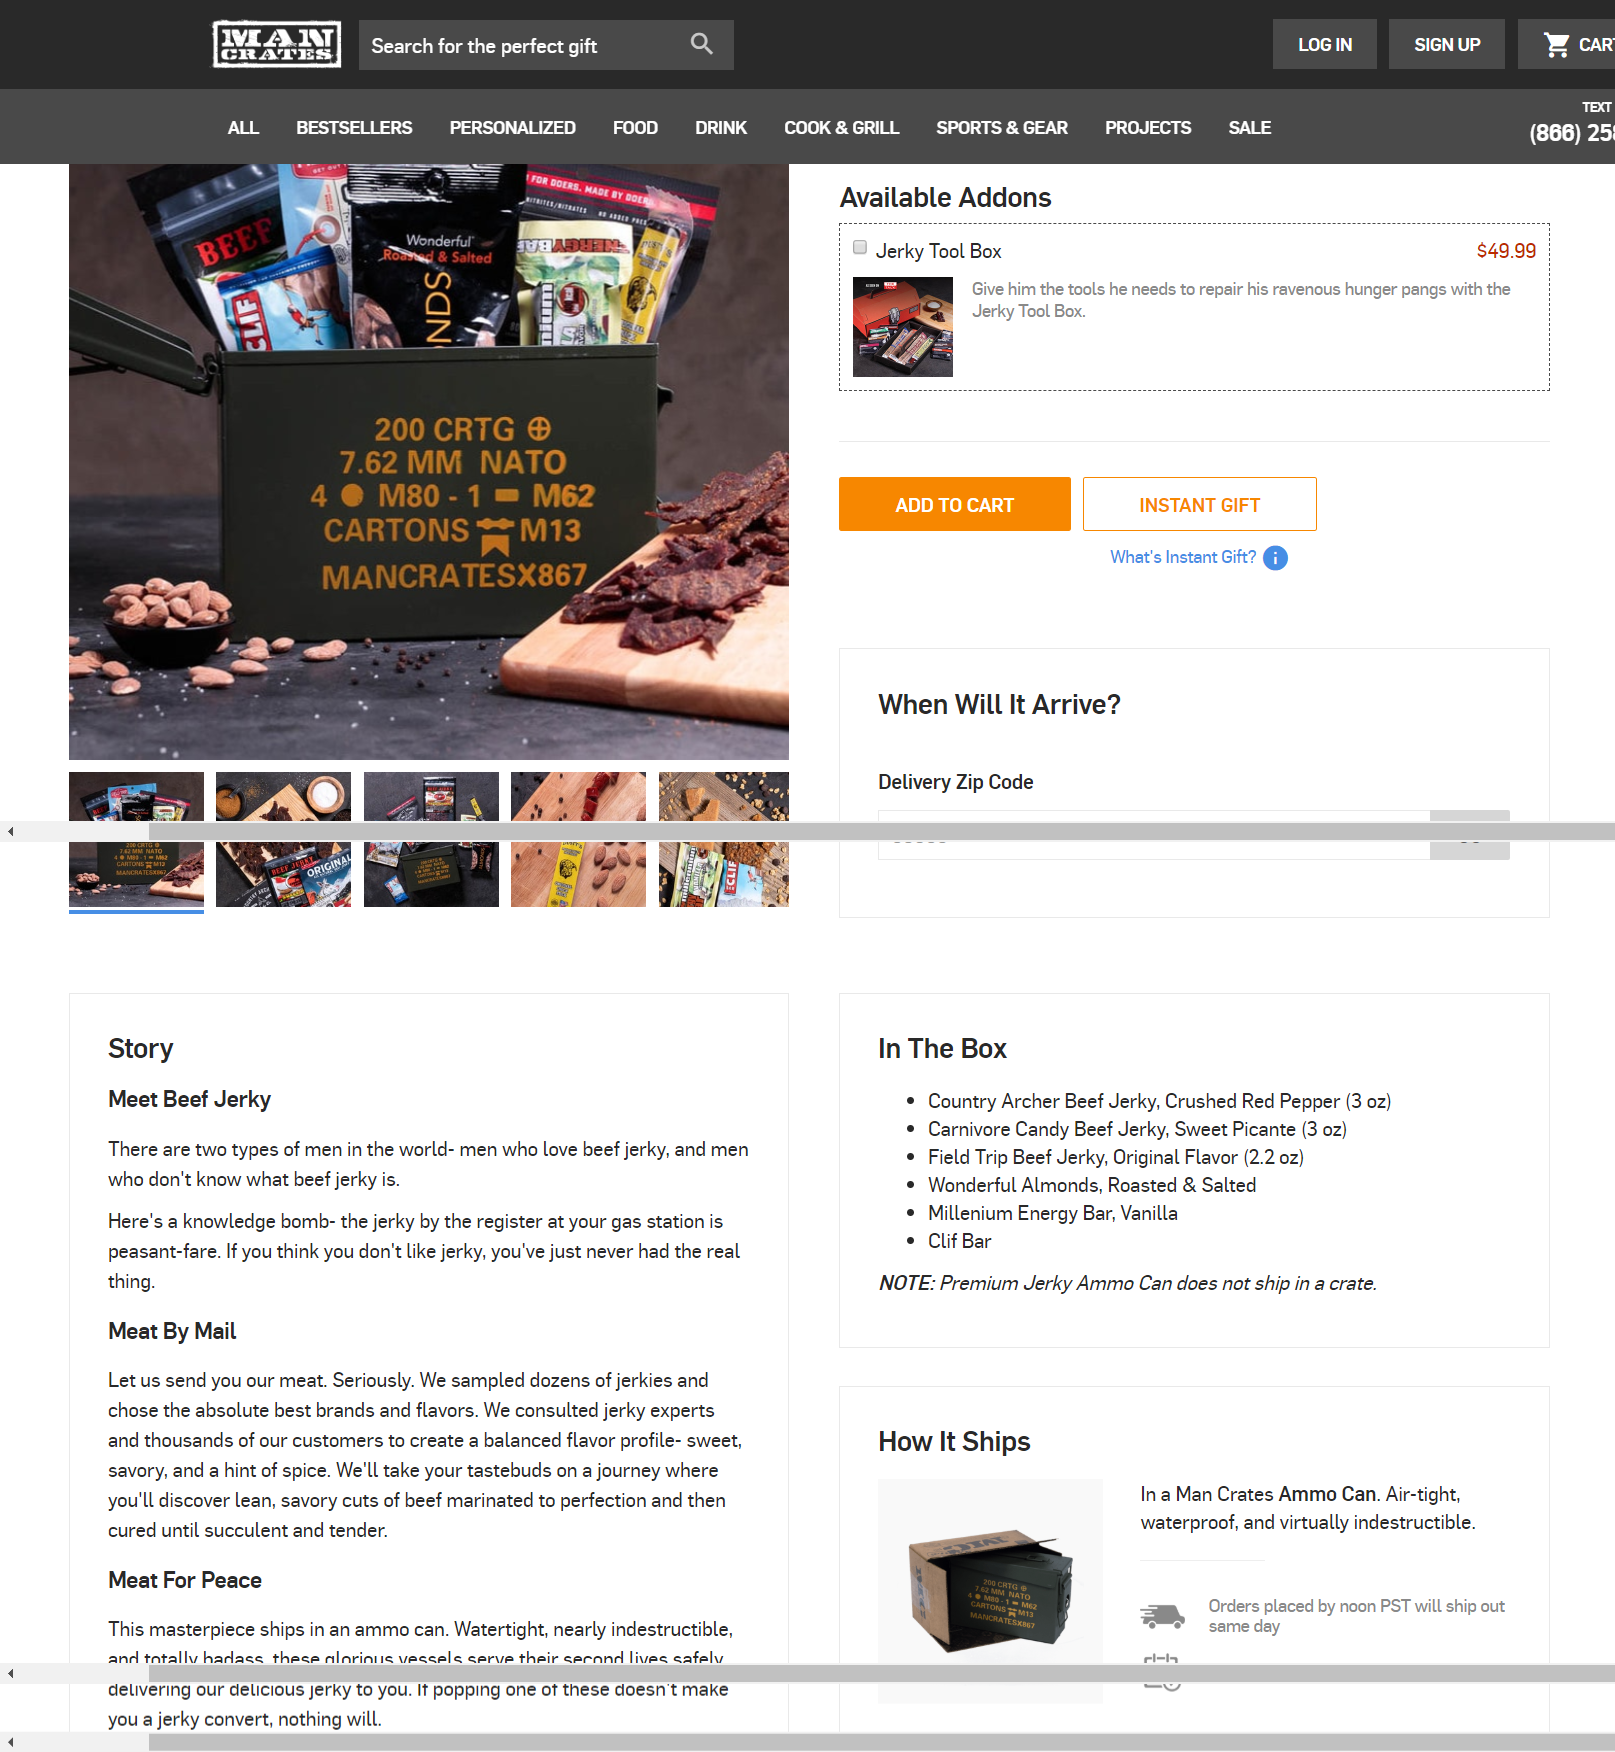 The importance of a well-written product page can't be overstated